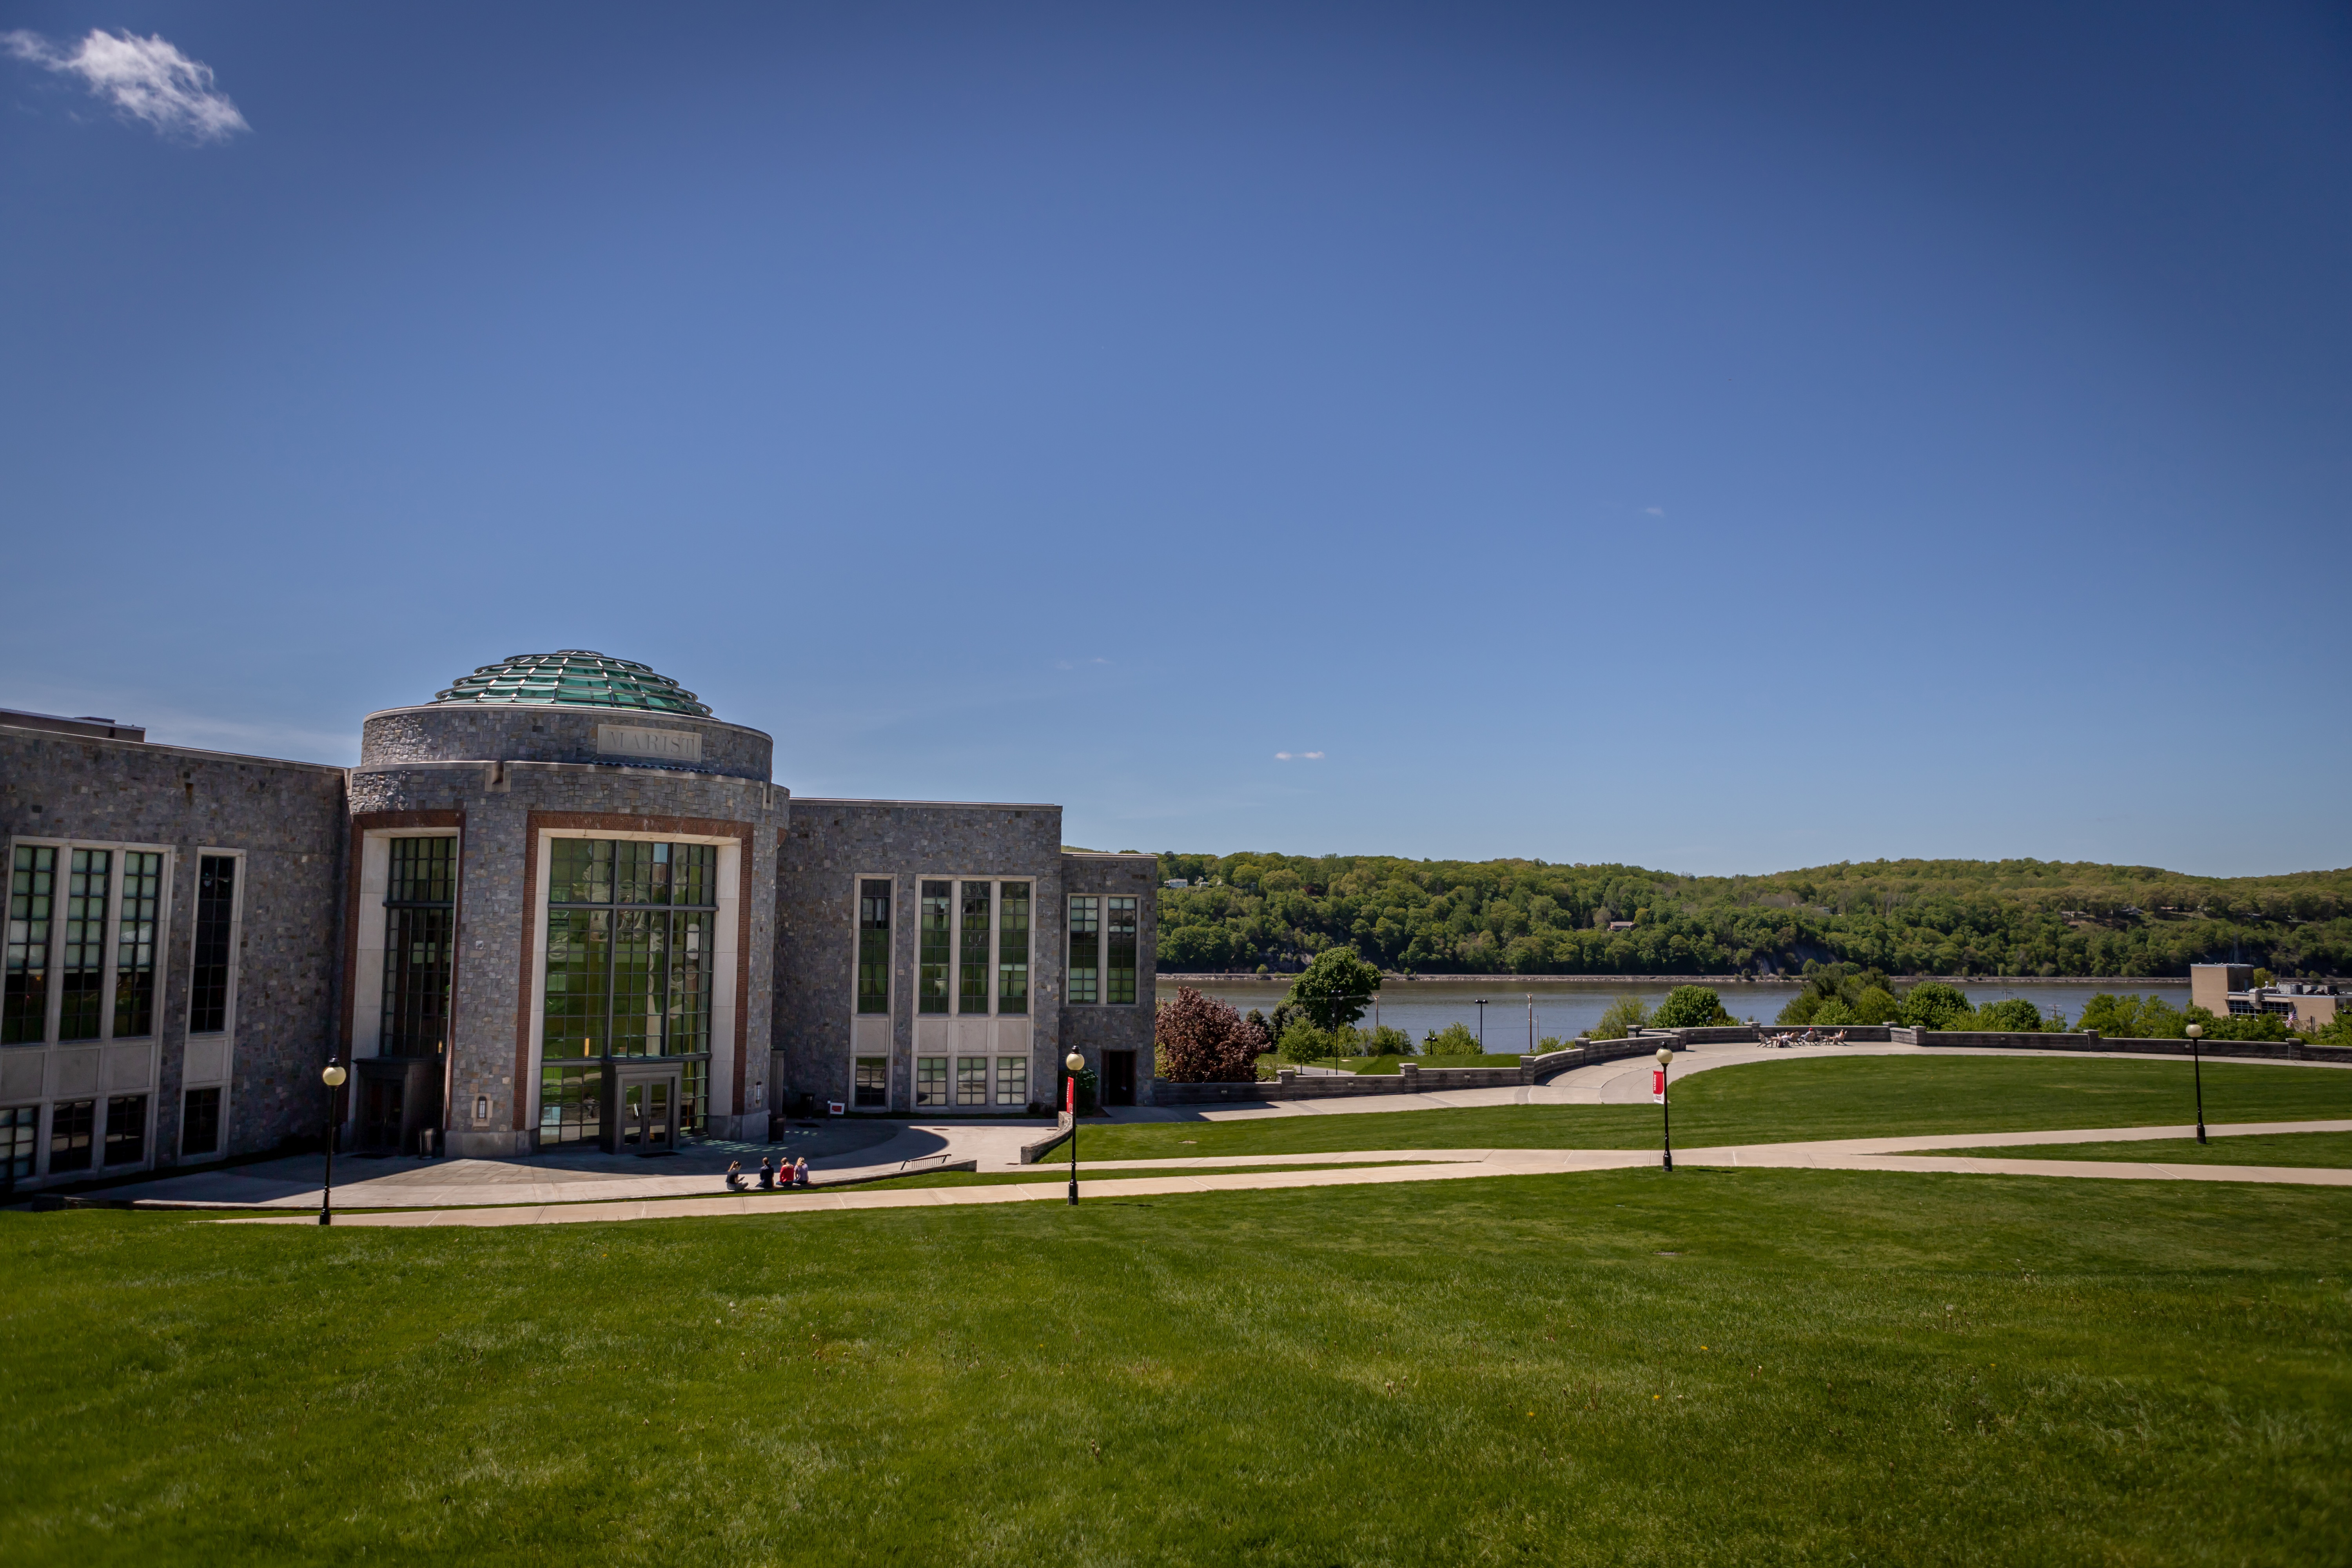 Marist College in Poughkeepsie NY, located near our new custom homes at Sleight Farm at LaGrange